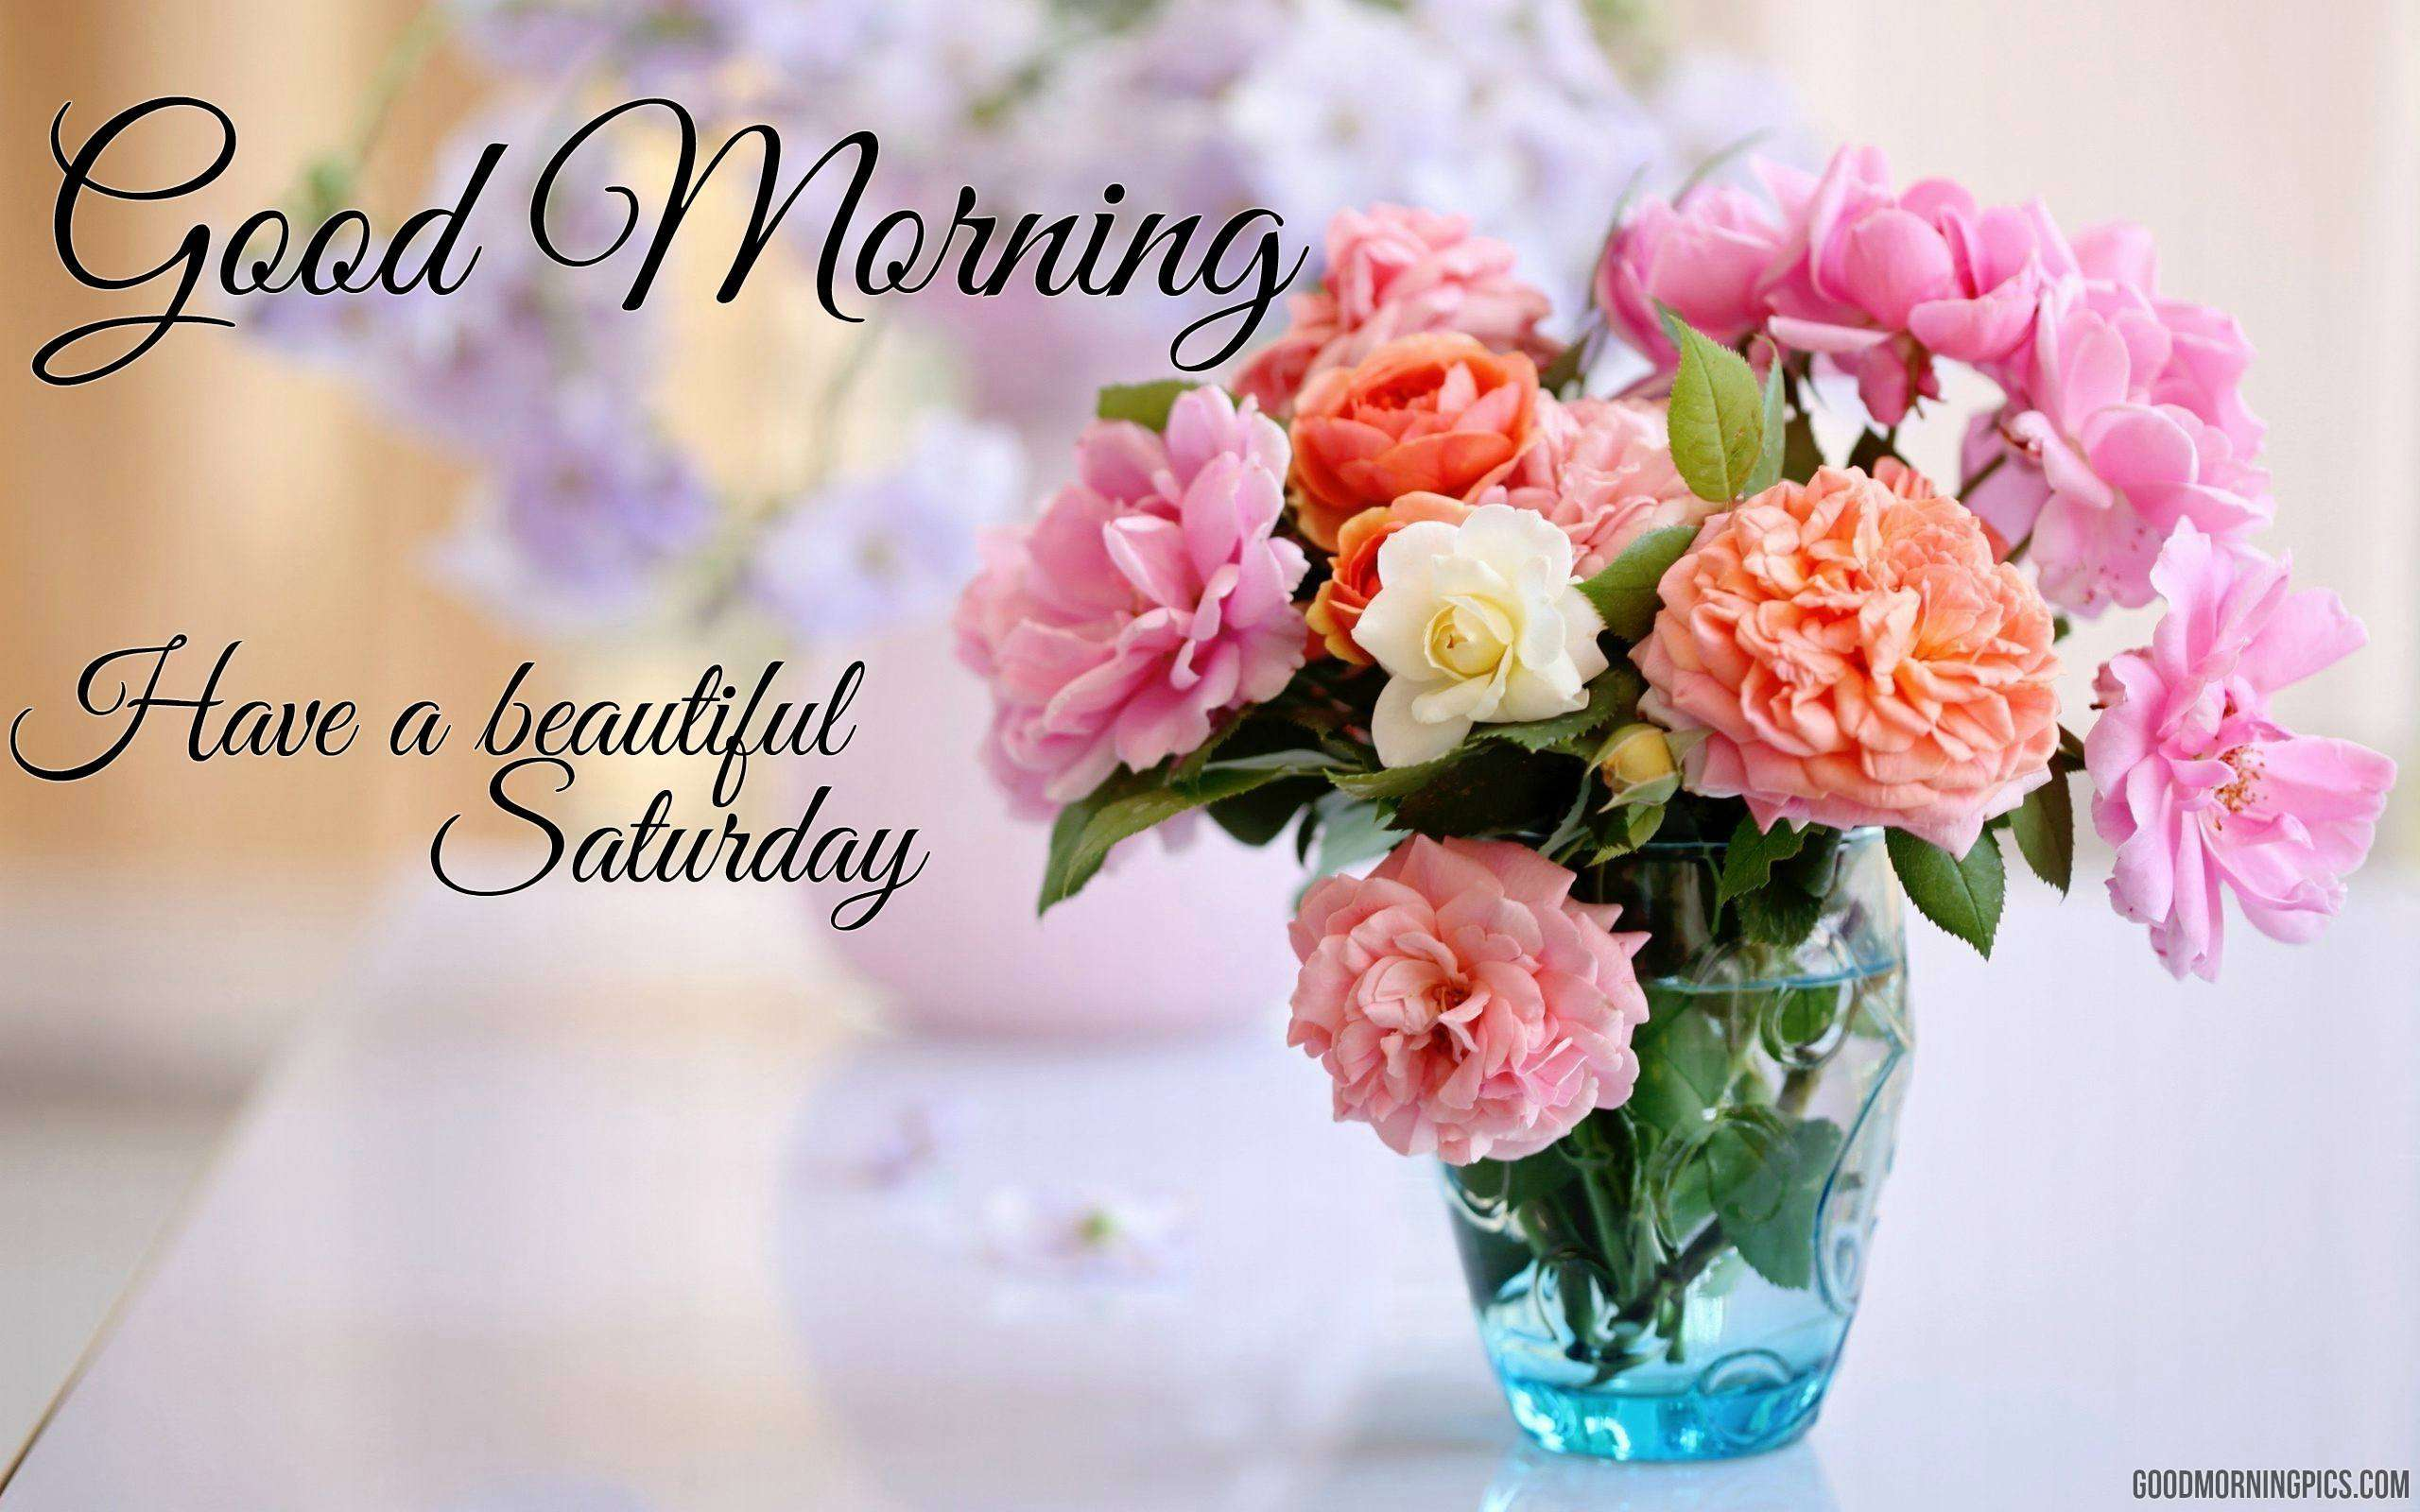 Good morning pics flowers images and quotes share these beautiful flowers and wishes a good saturday to your friends izmirmasajfo